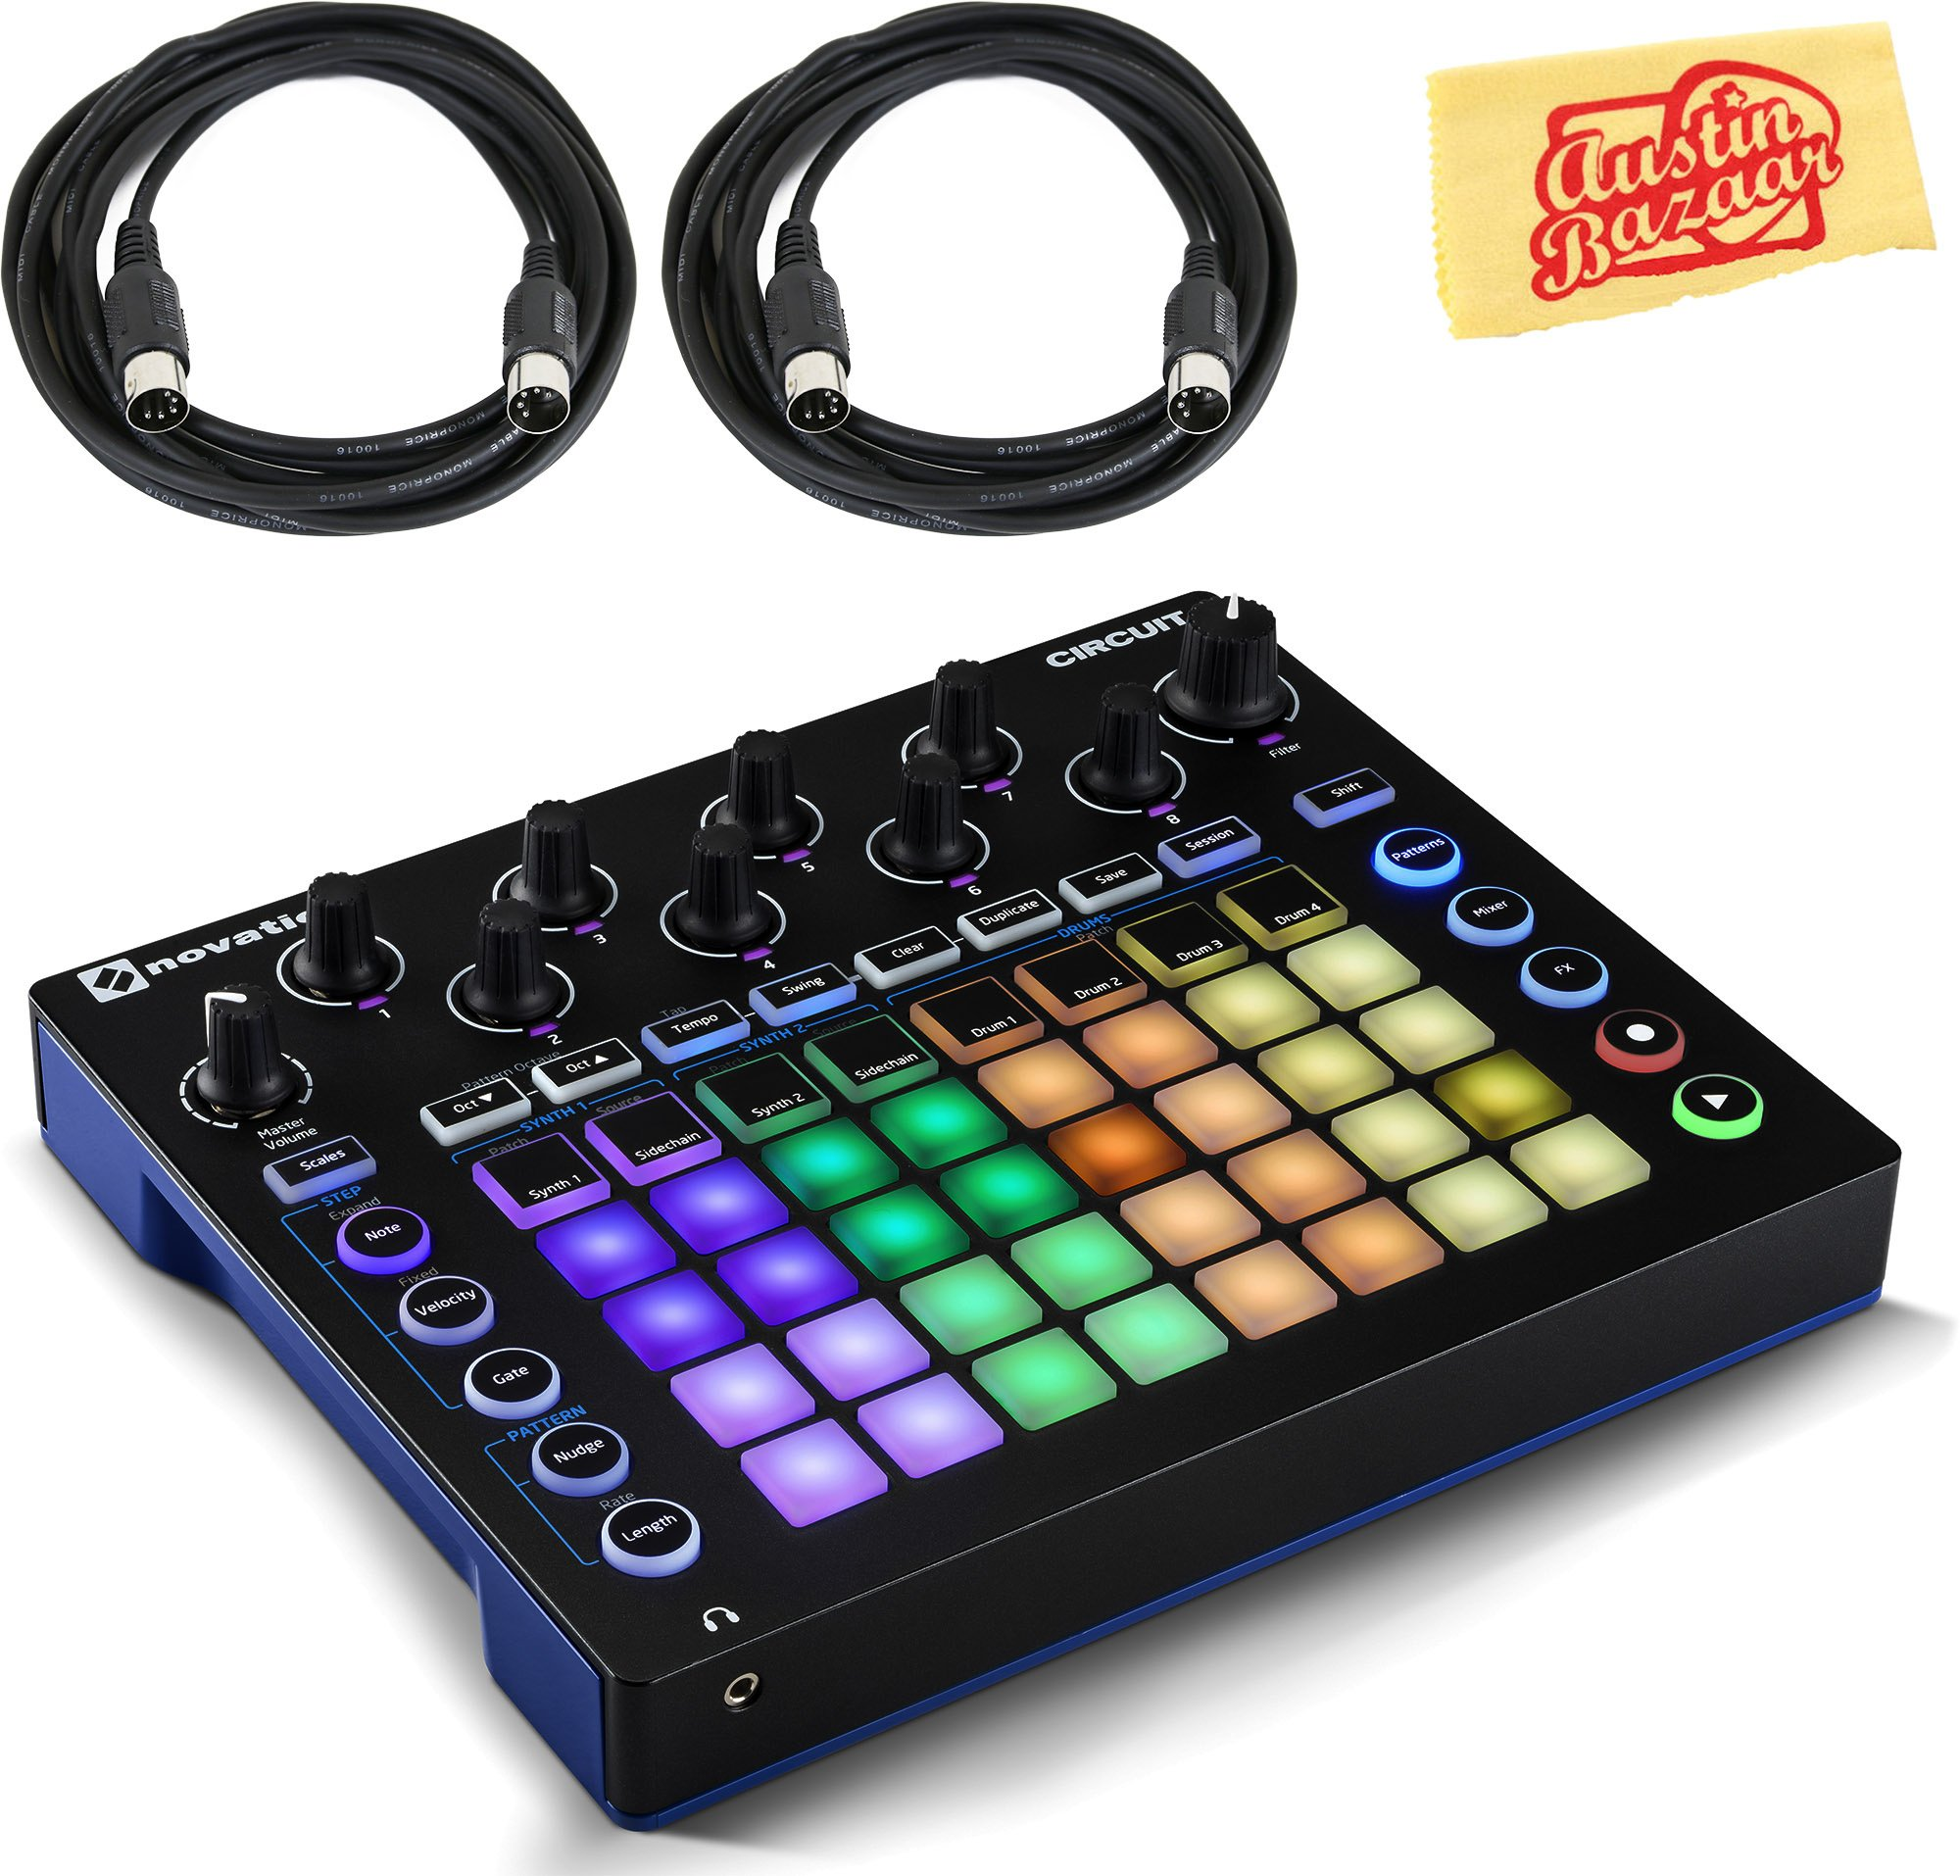 Novation Circuit Sequencer Bundle with MIDI Cables and Austin Bazaar Polishing Cloth by Novation